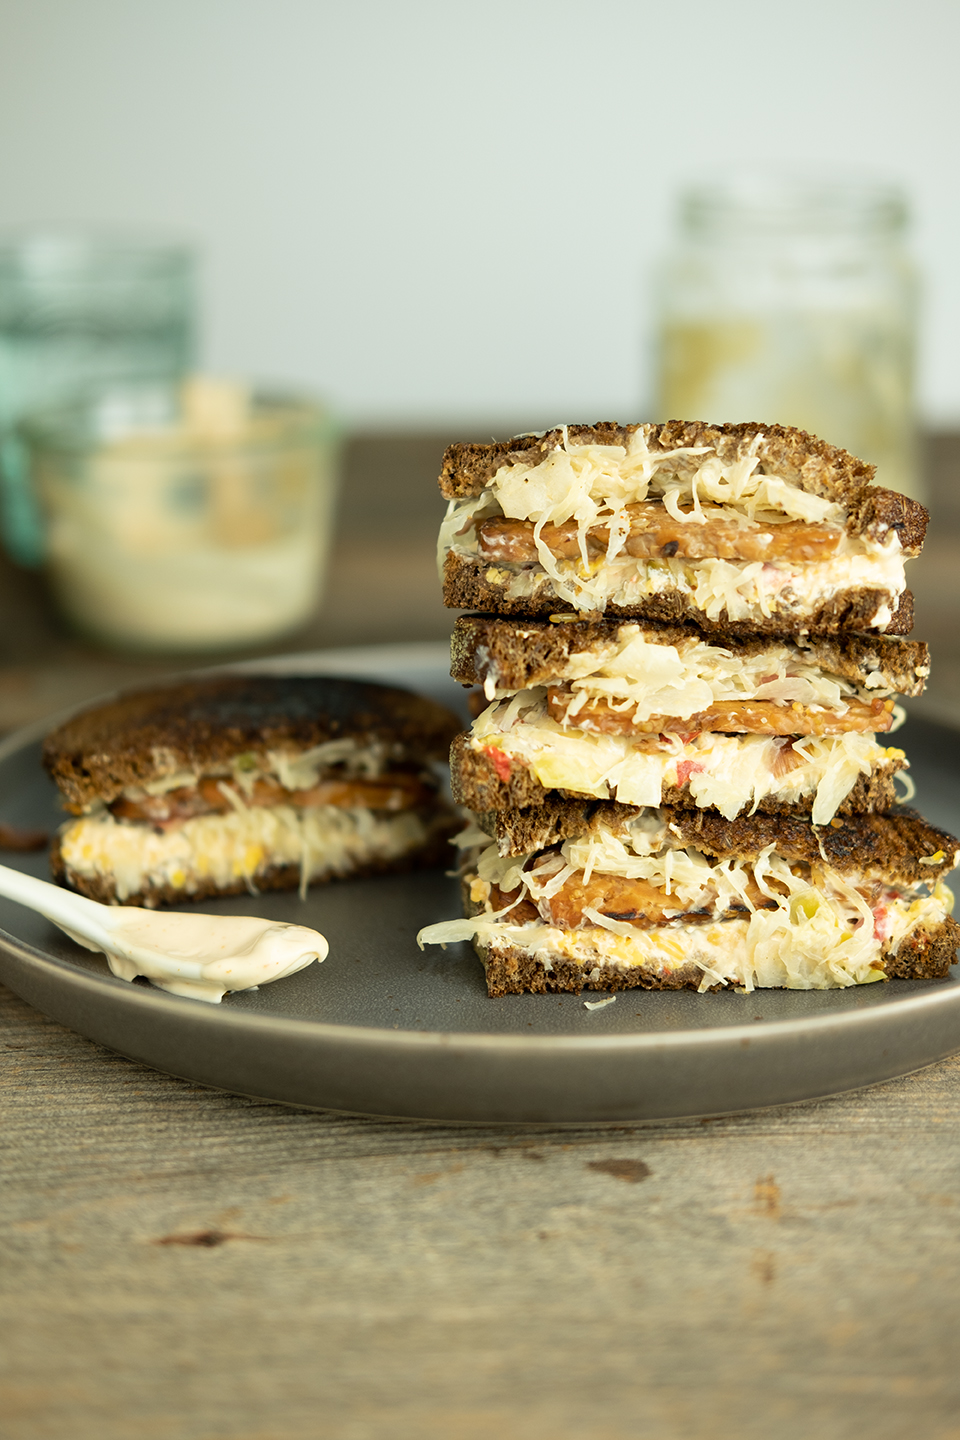 stack of vegetarian reuben sandwiches on a brown plate and wooden surface